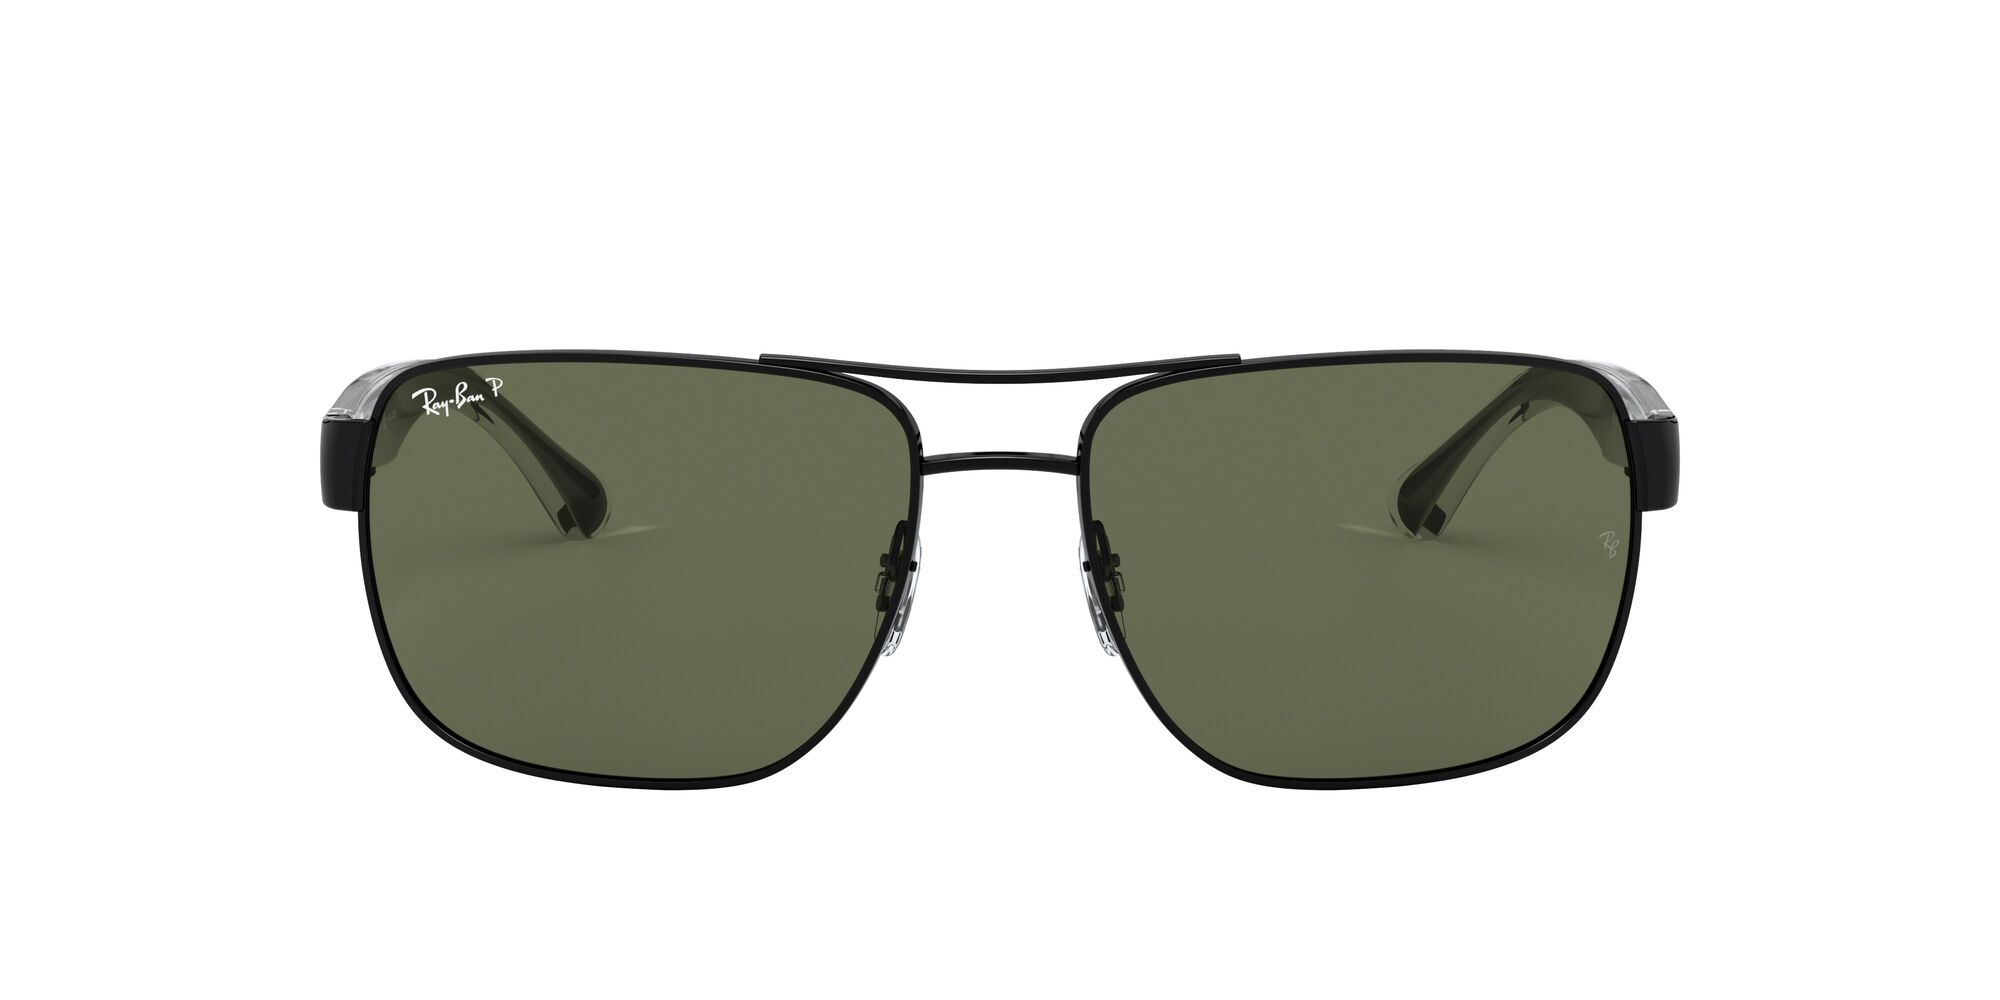 Front Ray-Ban Ray-Ban 0RB3530 002/9A 58/17 Grijs/Groen